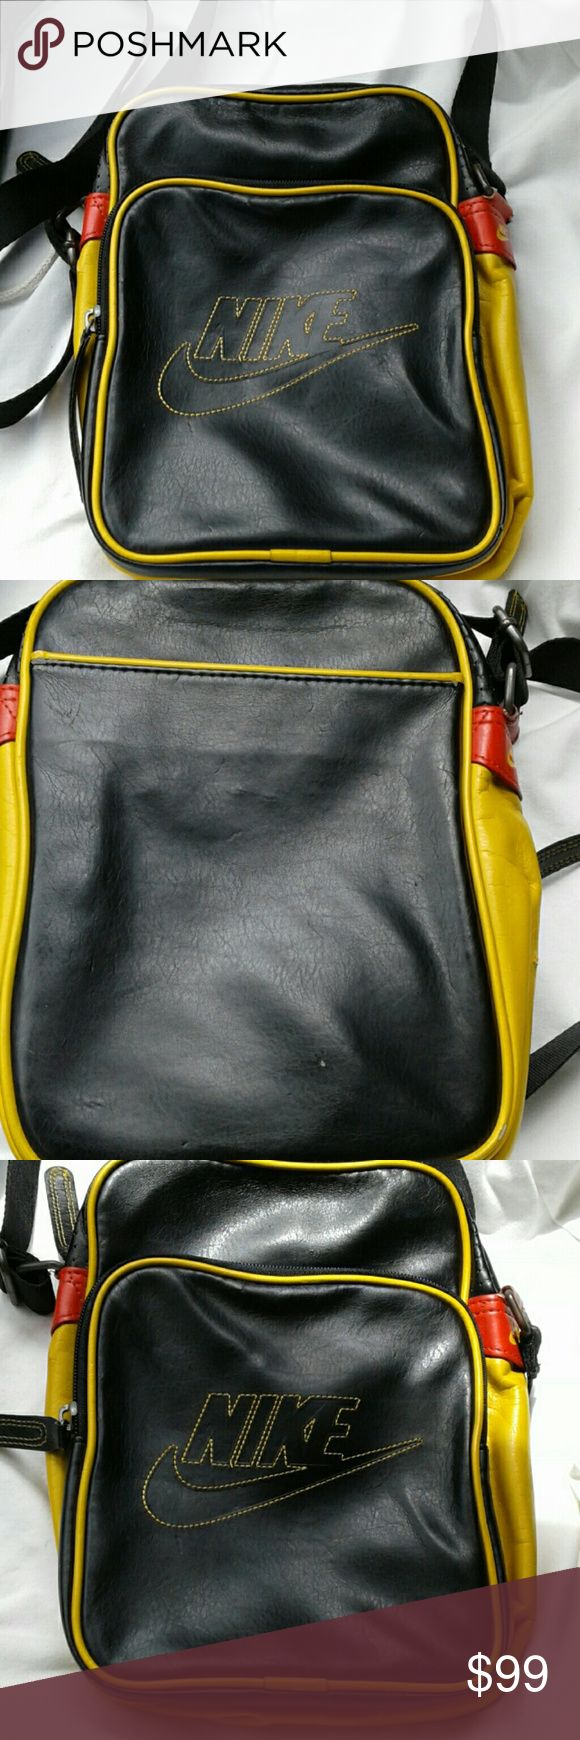 Make offer Nike crossbody travel bag unisex This is not a large bag BUT it holds a lot and is a must for any occasion when your on the go this summer great for traveling etc This is polyester so it looks like its leather has some minor scuffing but its not on front just on small area make offer Nike Bags